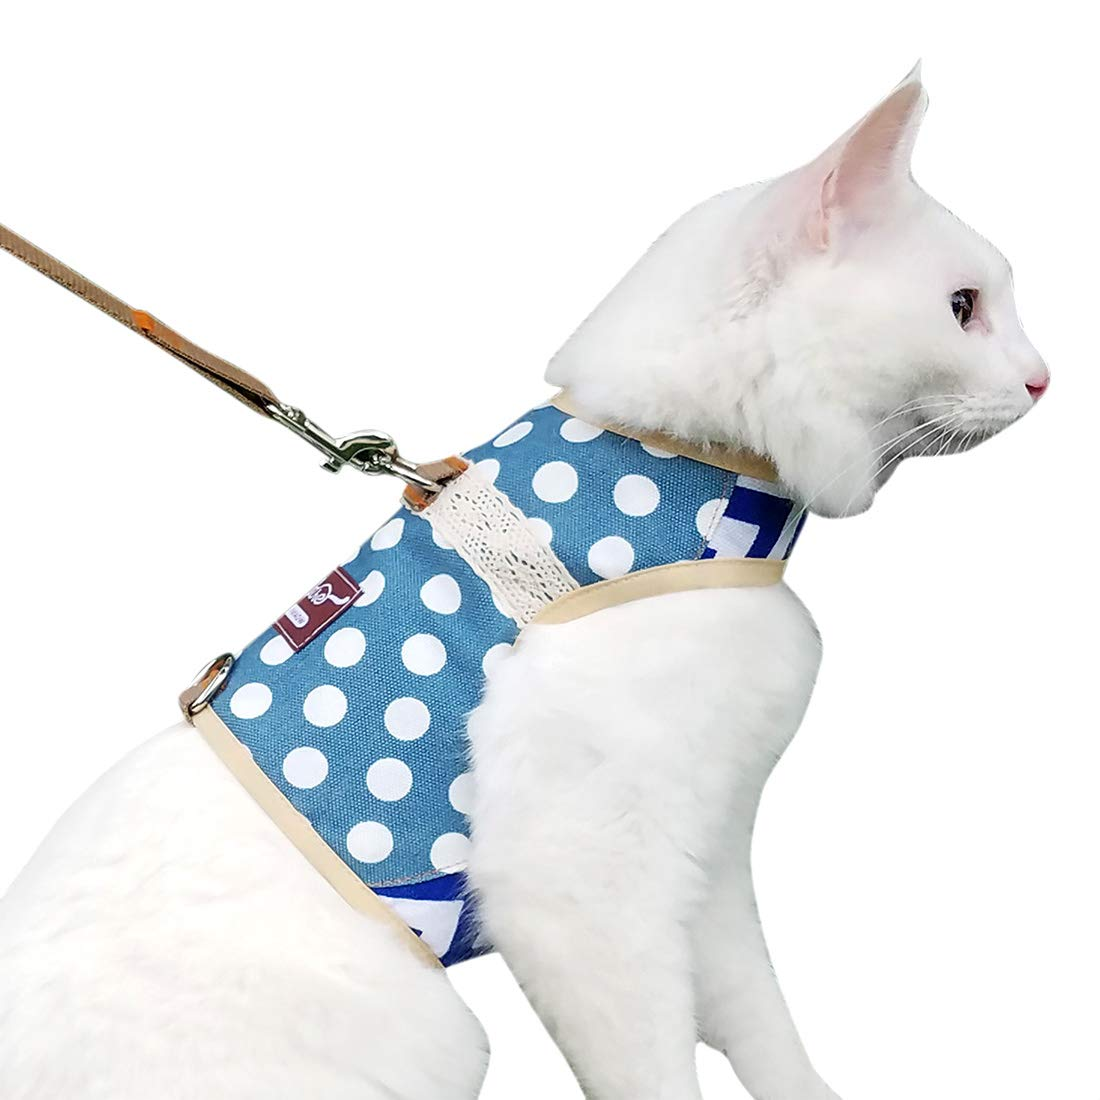 Yizhi Miaow Escape Proof Cat Harness with Leash Large, Adjustable Cat Walking Jackets, Padded Cat Vest Polka Dot Blue by Yizhi Miaow